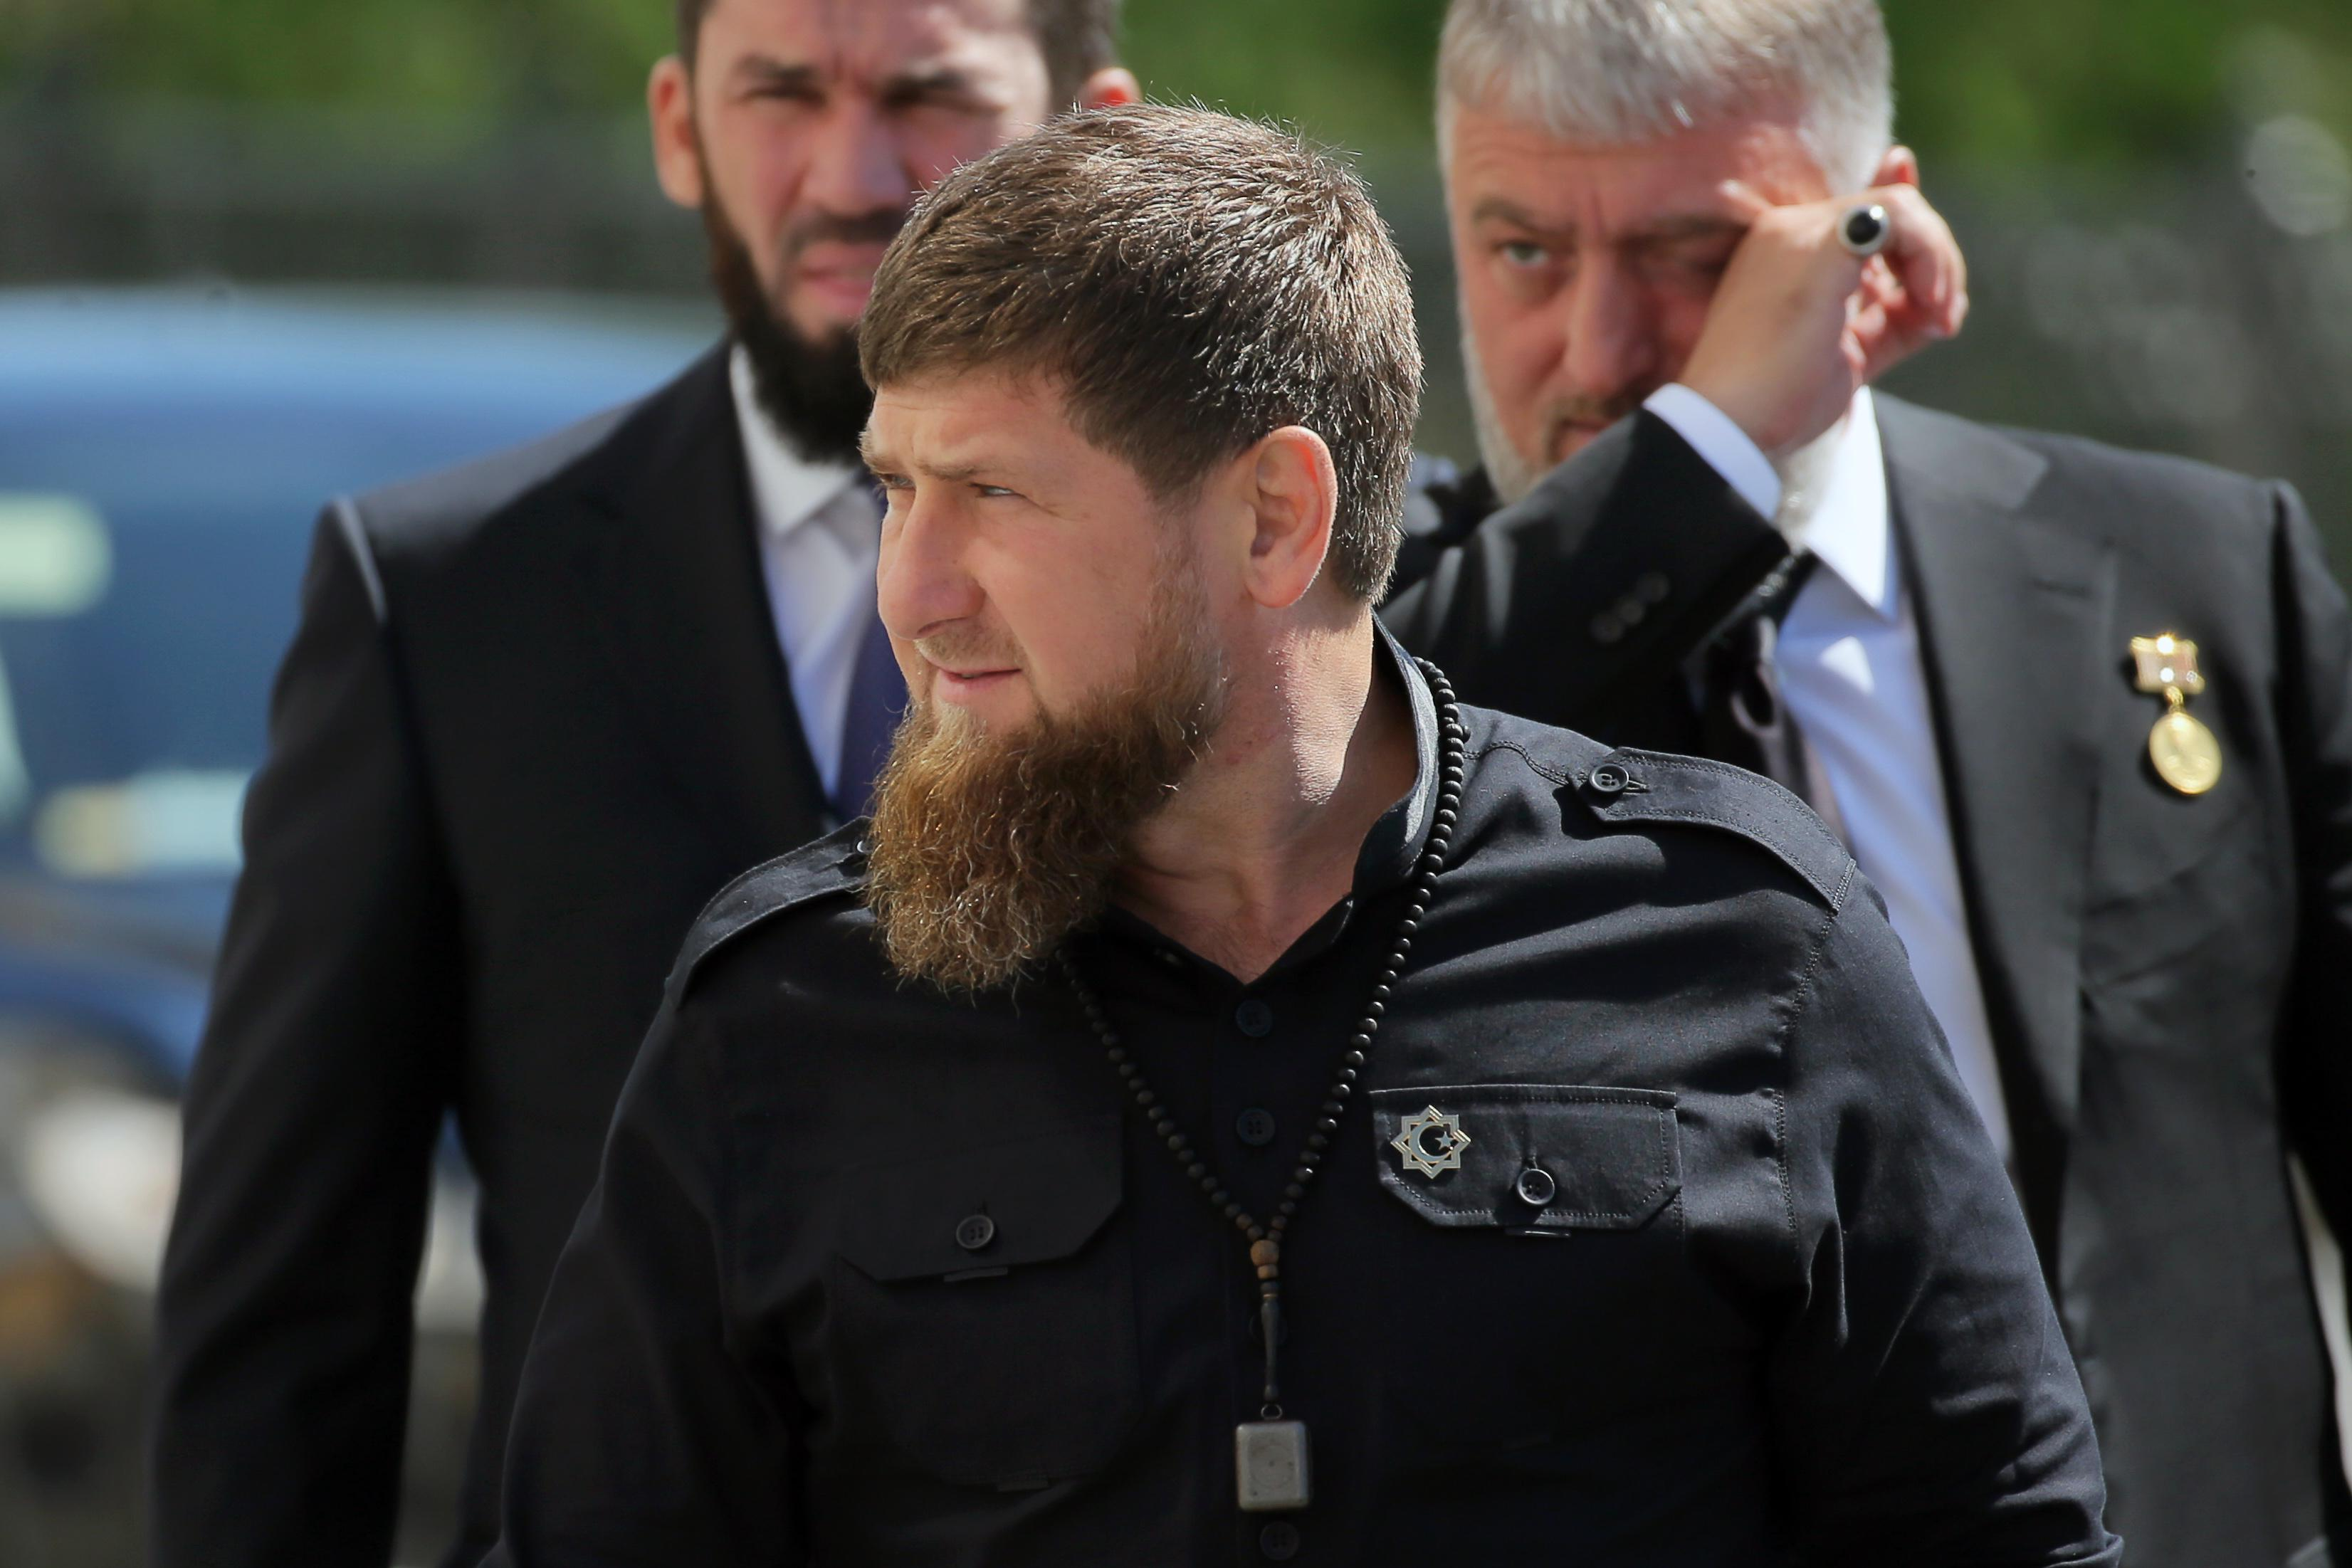 Ramzan Kadyrov, wearing a black shirt and a bushy beard, stands in front of two other men.